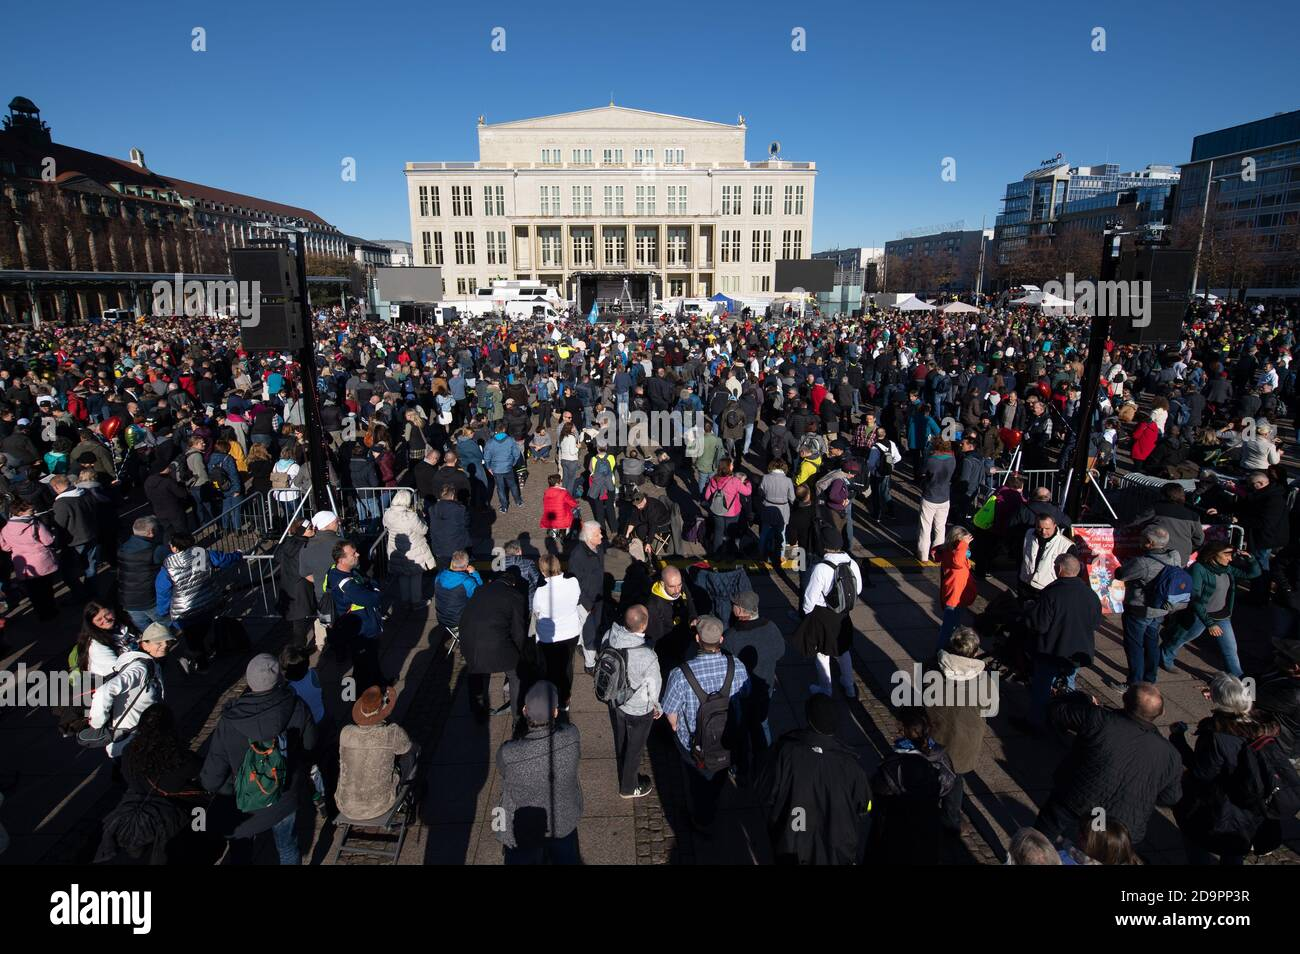 "Leipzig, Germany. 07th Nov, 2020. Thousands of participants of the demonstration of the Stuttgart initiative ""Lateral thinking"" are standing on Augustusplatz. 20,000 people are expected to attend the rally against the anti-corona measures adopted by the federal and state governments. Credit: Sebastian Kahnert/dpa-Zentralbild/dpa/Alamy Live News Stock Photo"